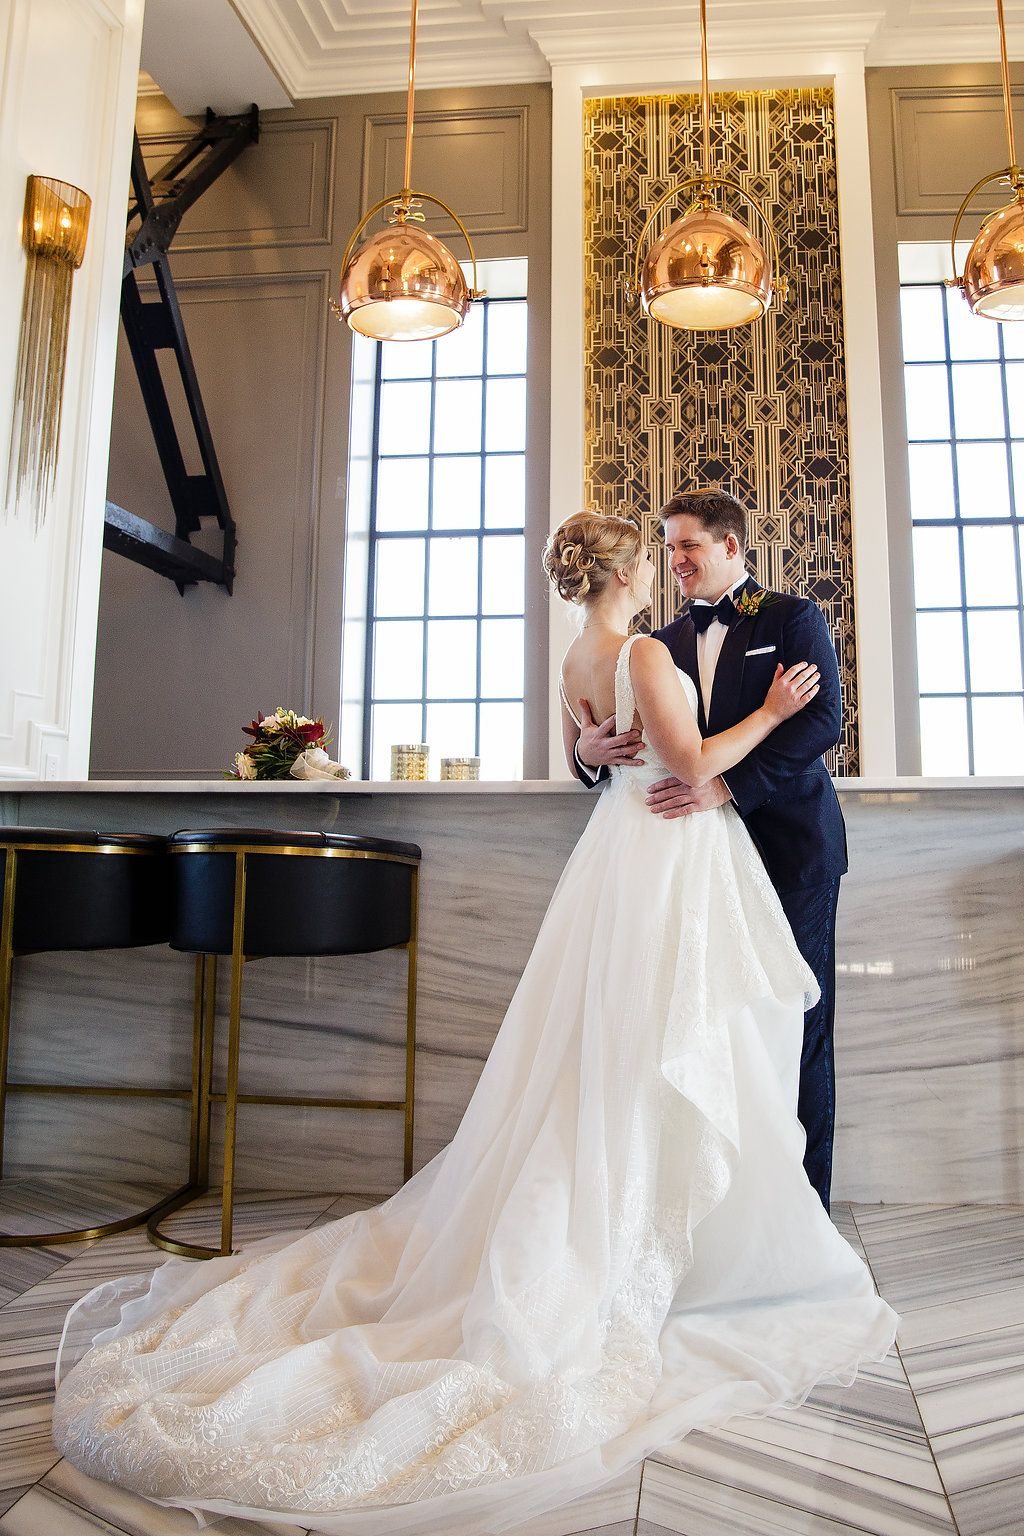 This Kansas City Bride's Modern Take on a Classic Gown